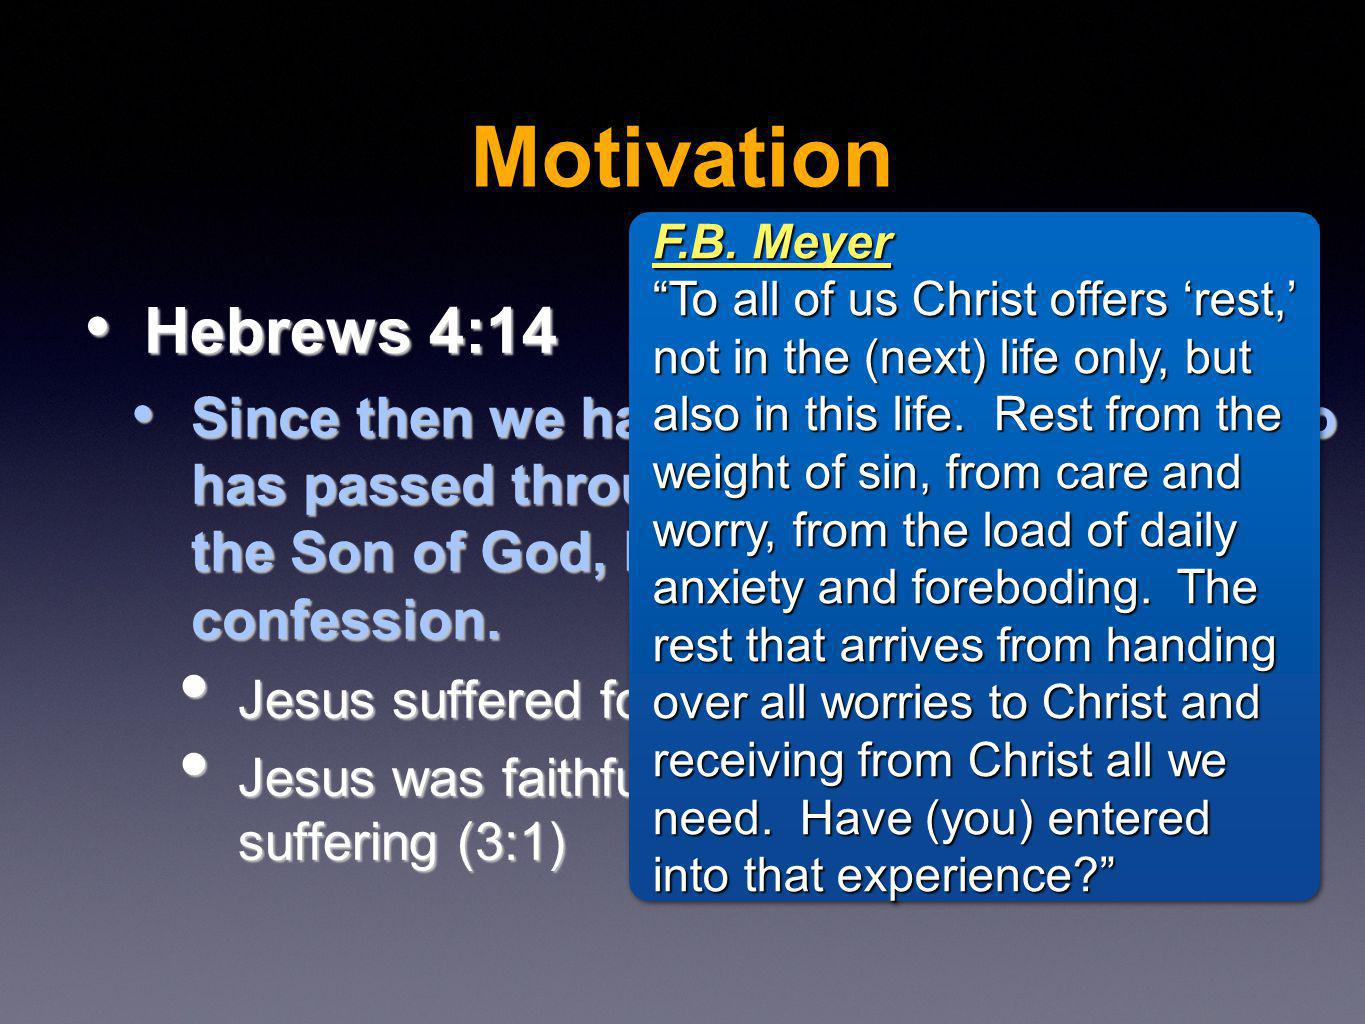 Hebrews 4:14 Hebrews 4:14 Since then we have a great high priest who has passed through the heavens, Jesus, the Son of God, let us hold fast our confession.